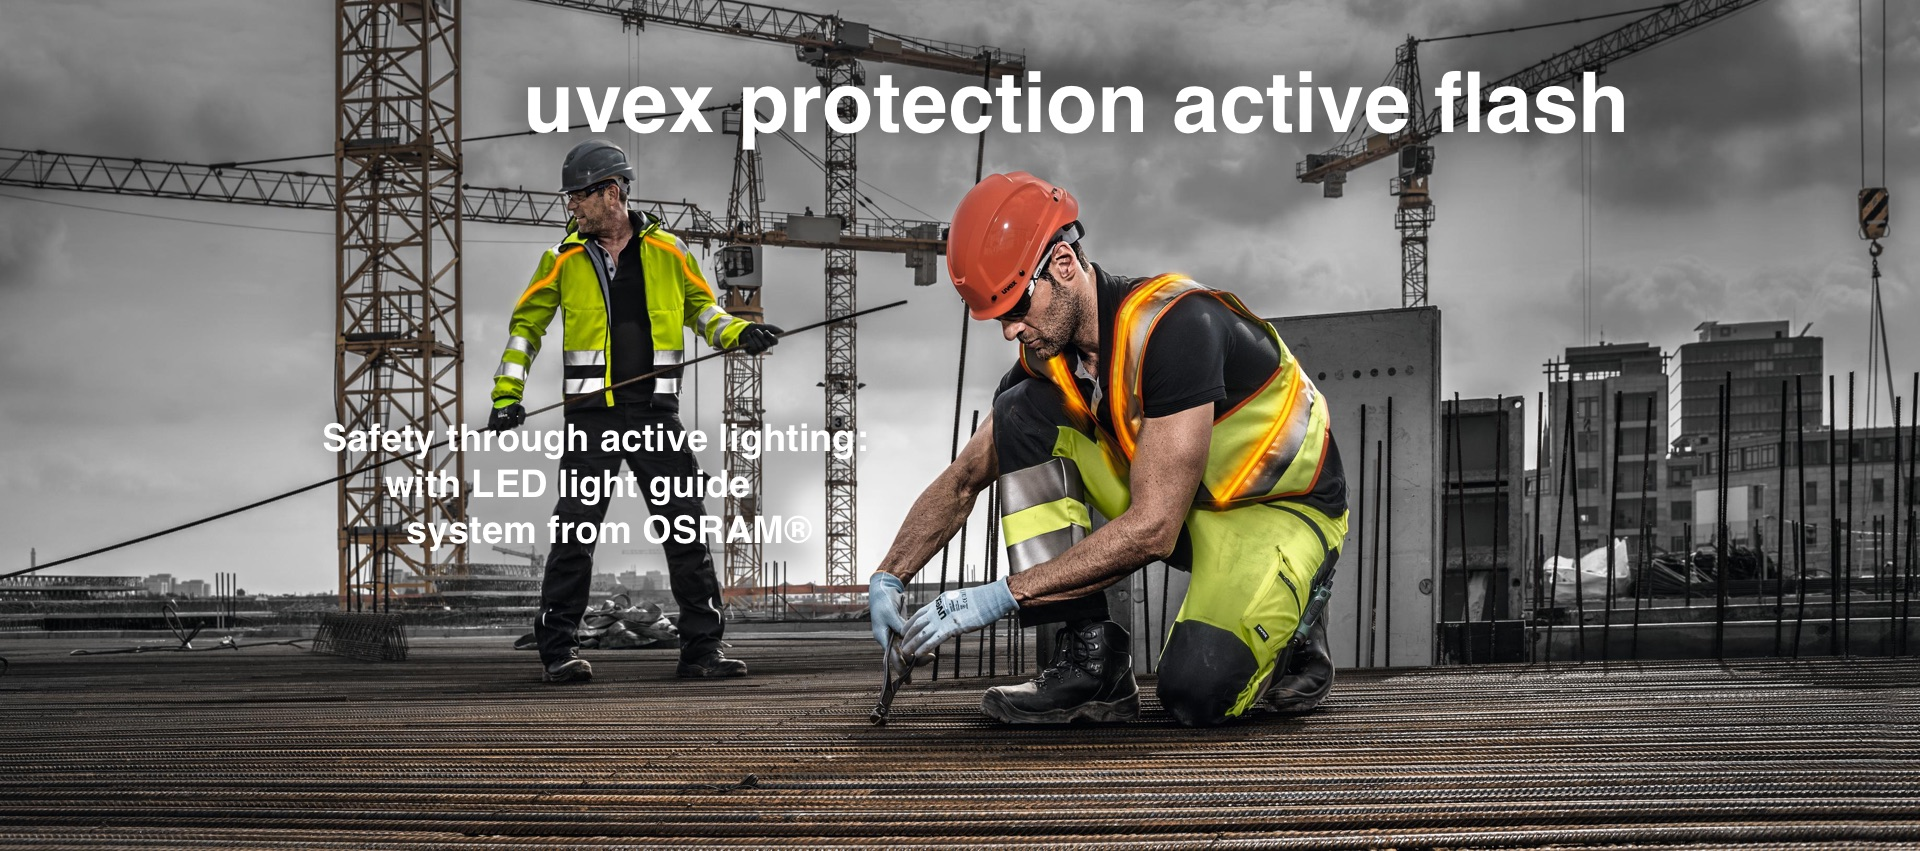 [Translate to Dutch:] Be visible, be safe – with an active LED lighting vest from uvex